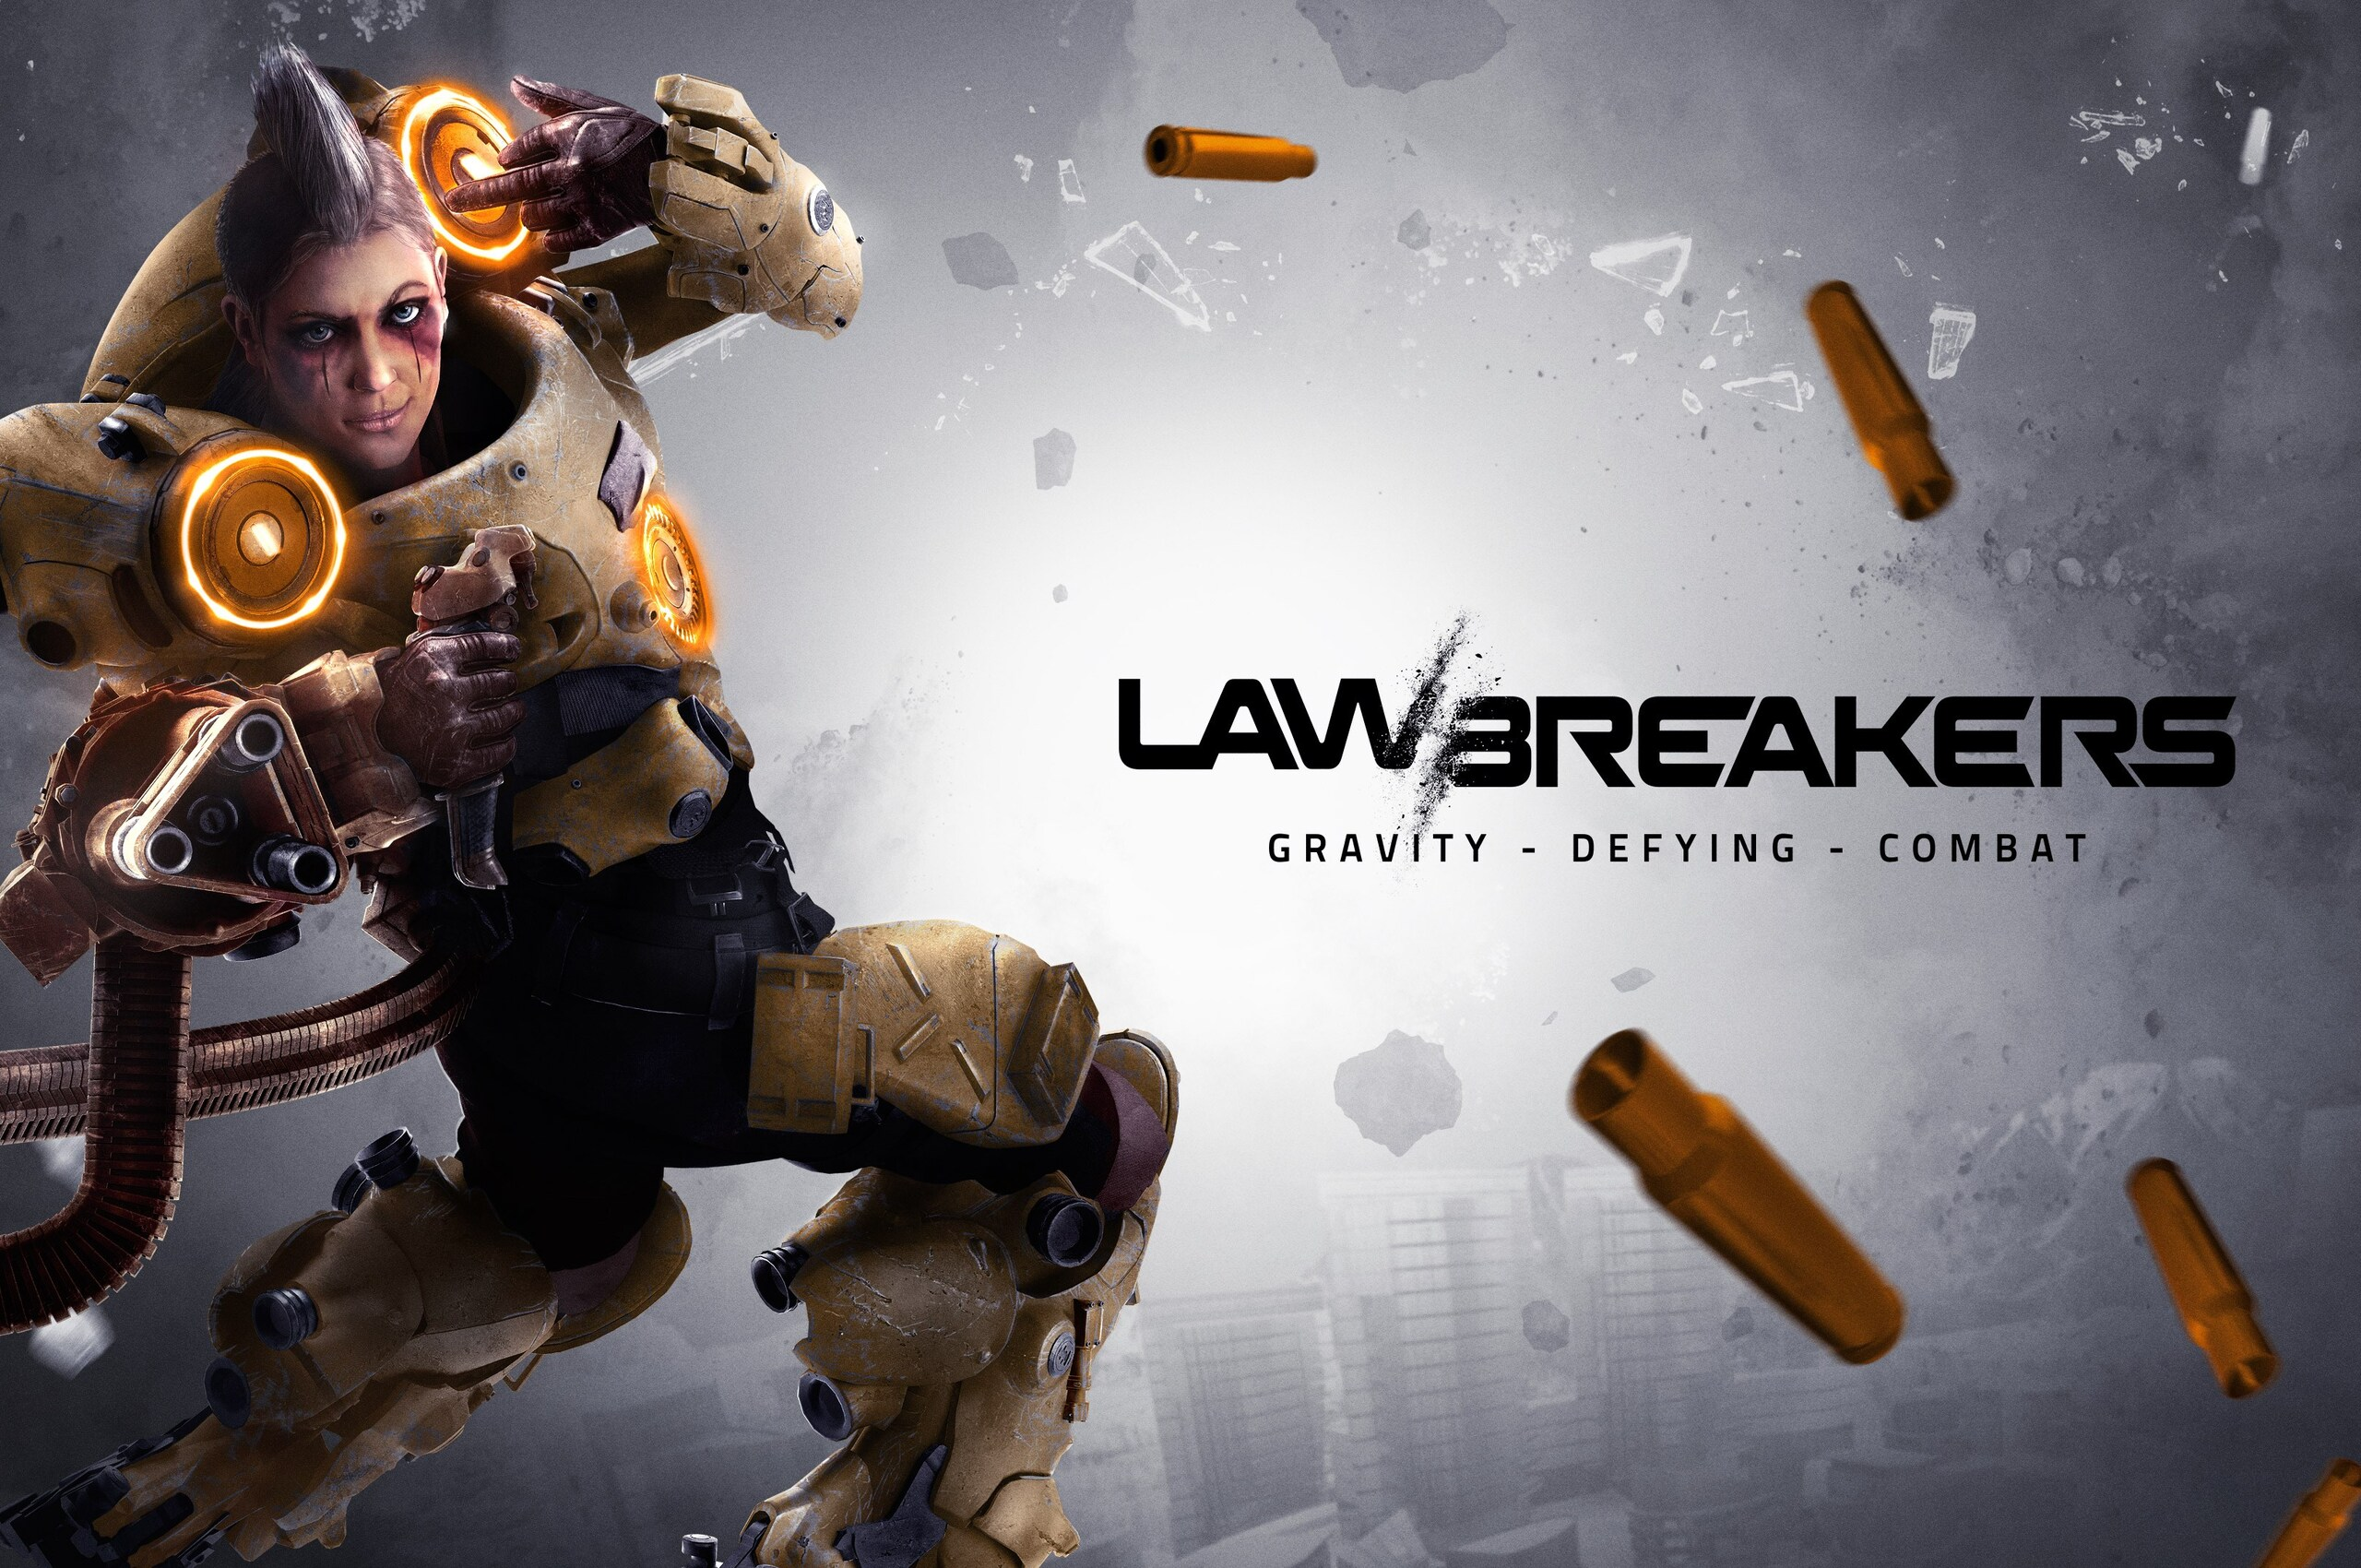 lawbreakers-game-ro.jpg